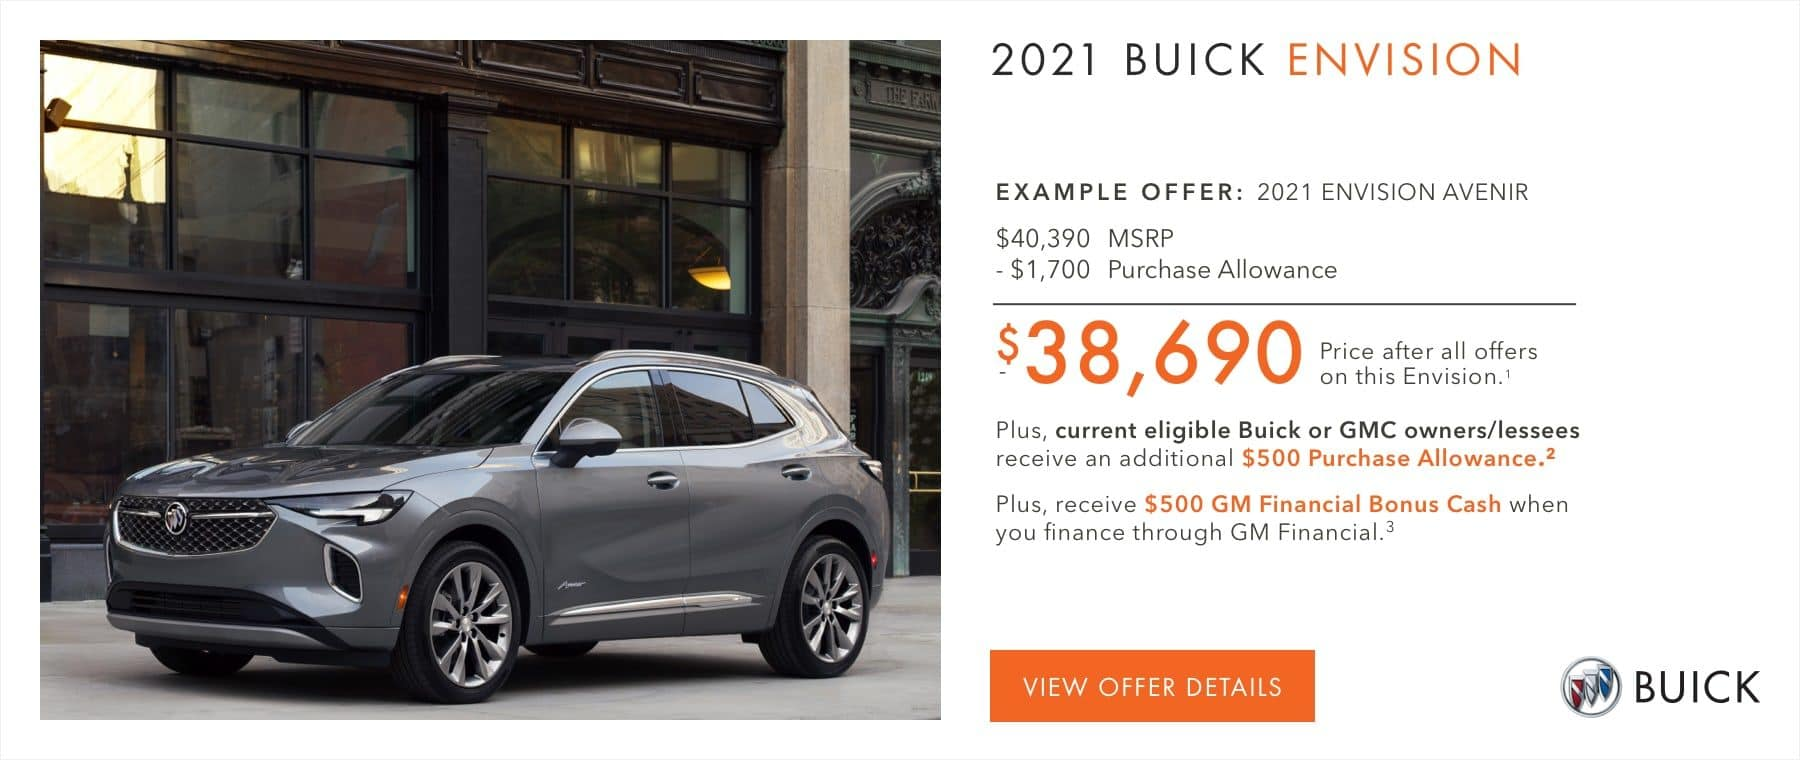 EXAMPLE OFFER: 2021 ENVISION AVENIR $40,390 MSRP -$1,700 Purchase Allowance $38,690 Price after all offers on this Envision.1 Plus, current eligible Buick or GMC owners/lessees receive an additional $500 Purchase Allowance.2 Plus, receive $500 GM Financial Bonus Cash when you finance through GM Financial.3